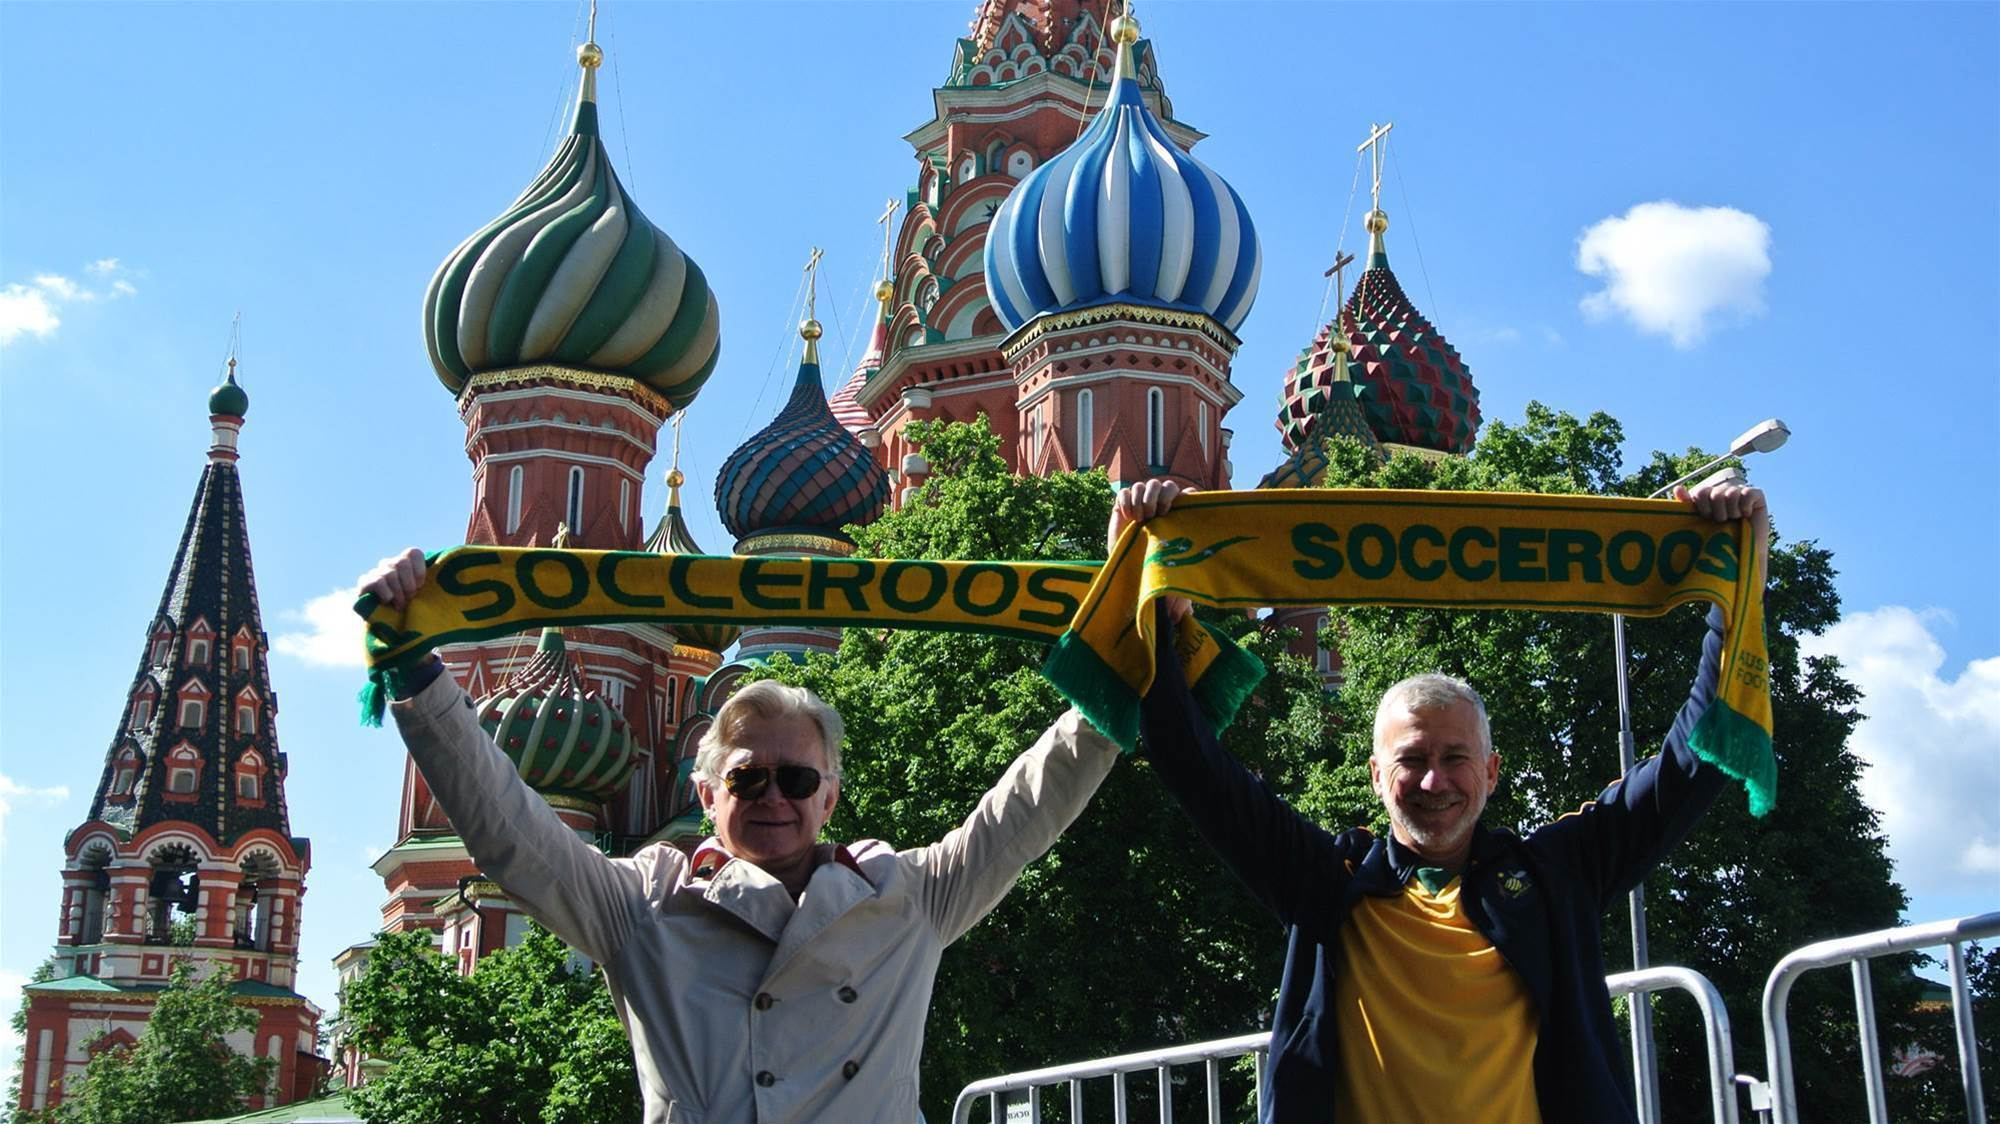 Russia a hit with Confeds Cup fans